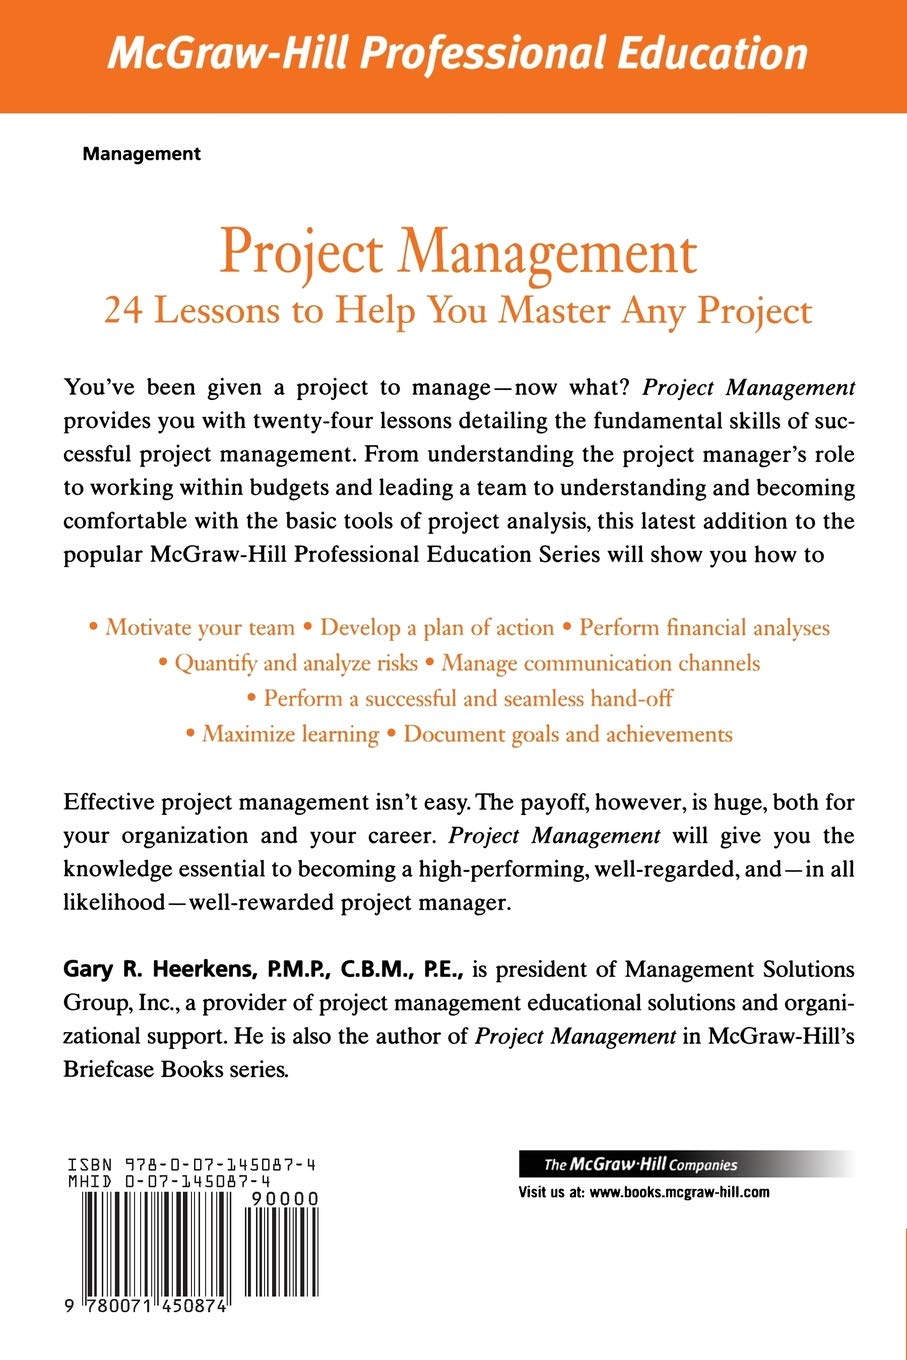 Buy Project Management The Mcgraw Hill Professional Education